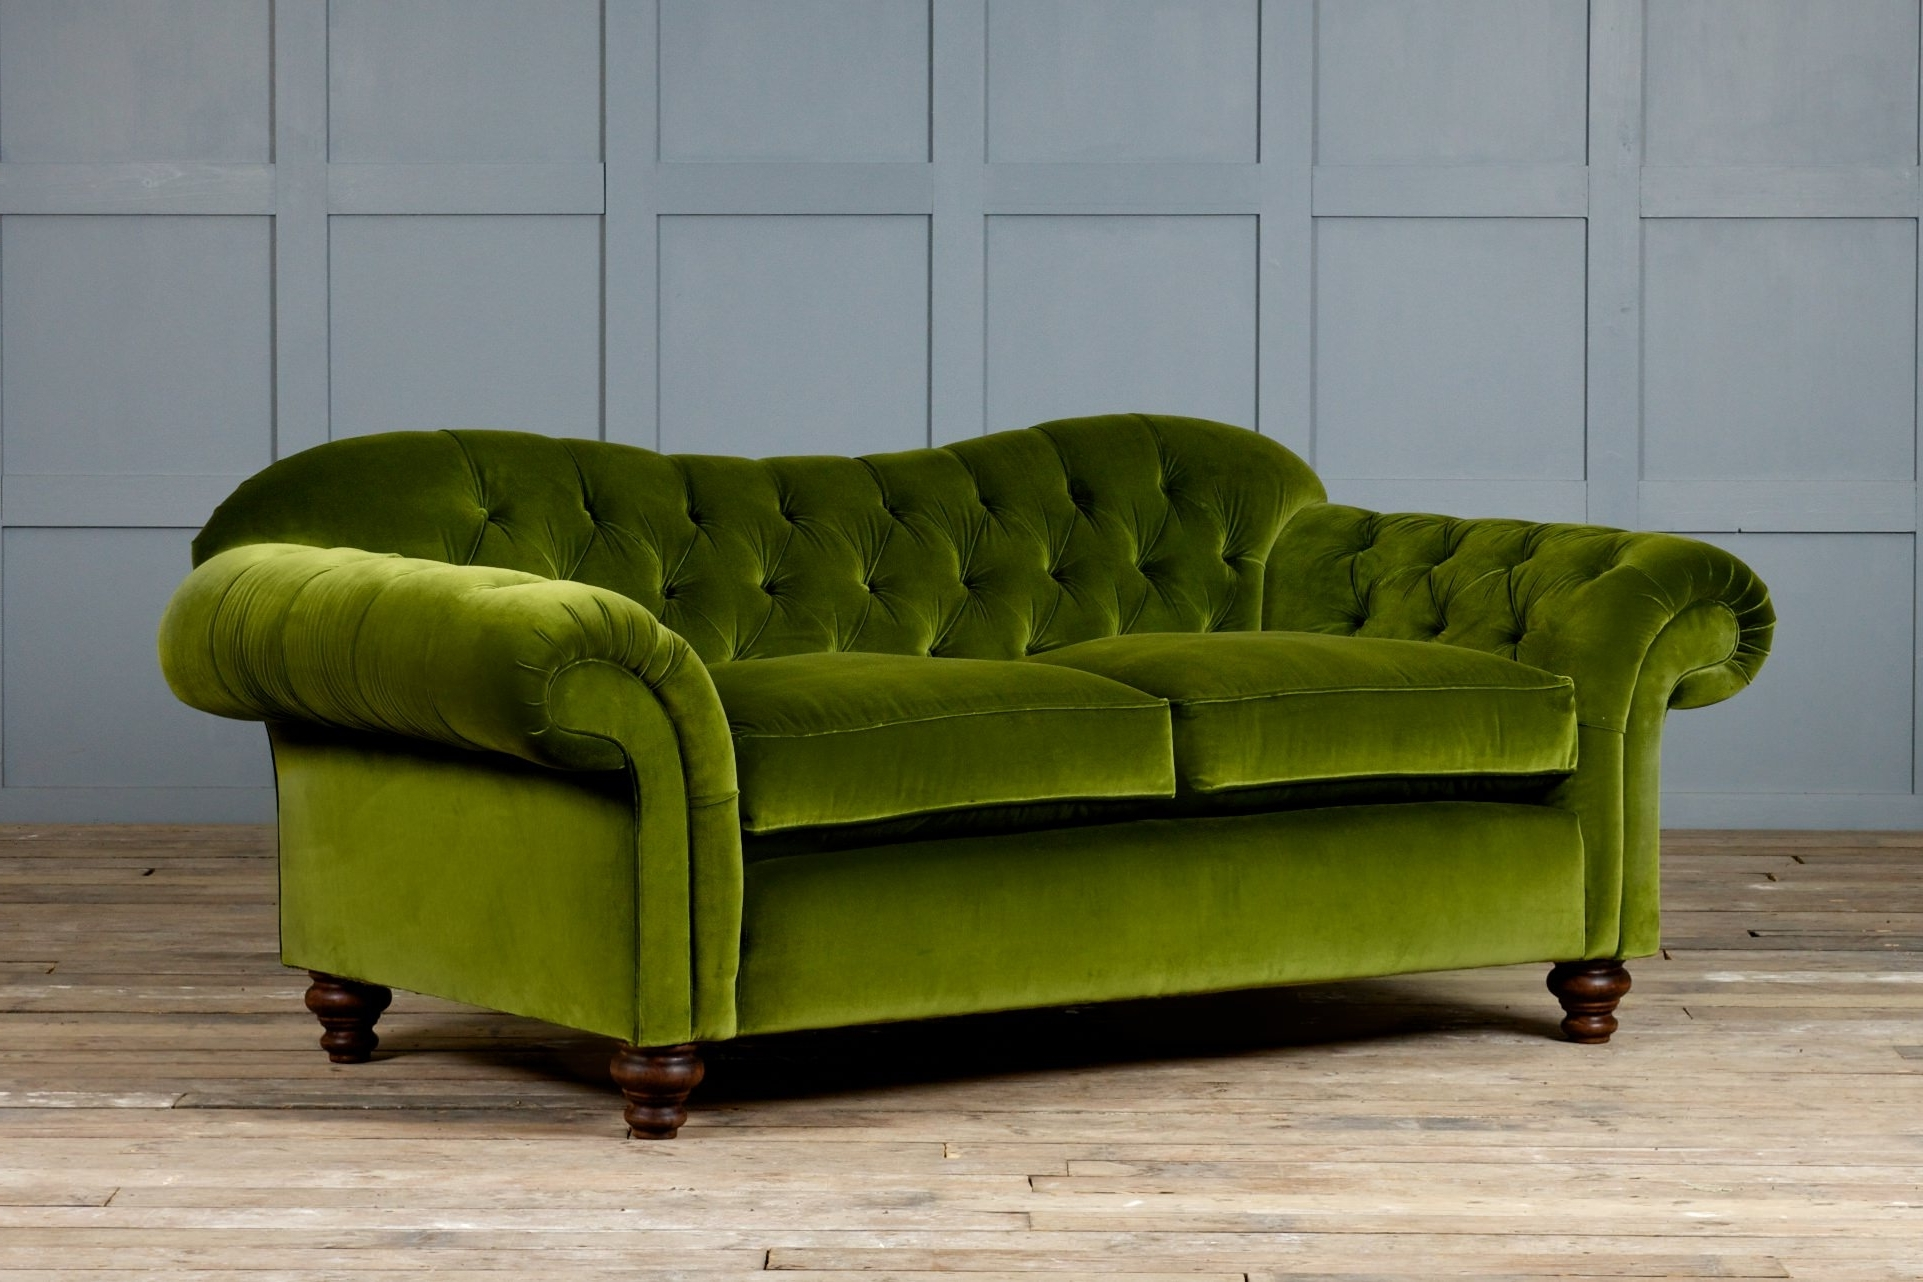 Green Sofa Chairs For Most Current Furniture : Perfect Green Velvet Couch 85 In Modern Sofa Ideas (View 5 of 20)